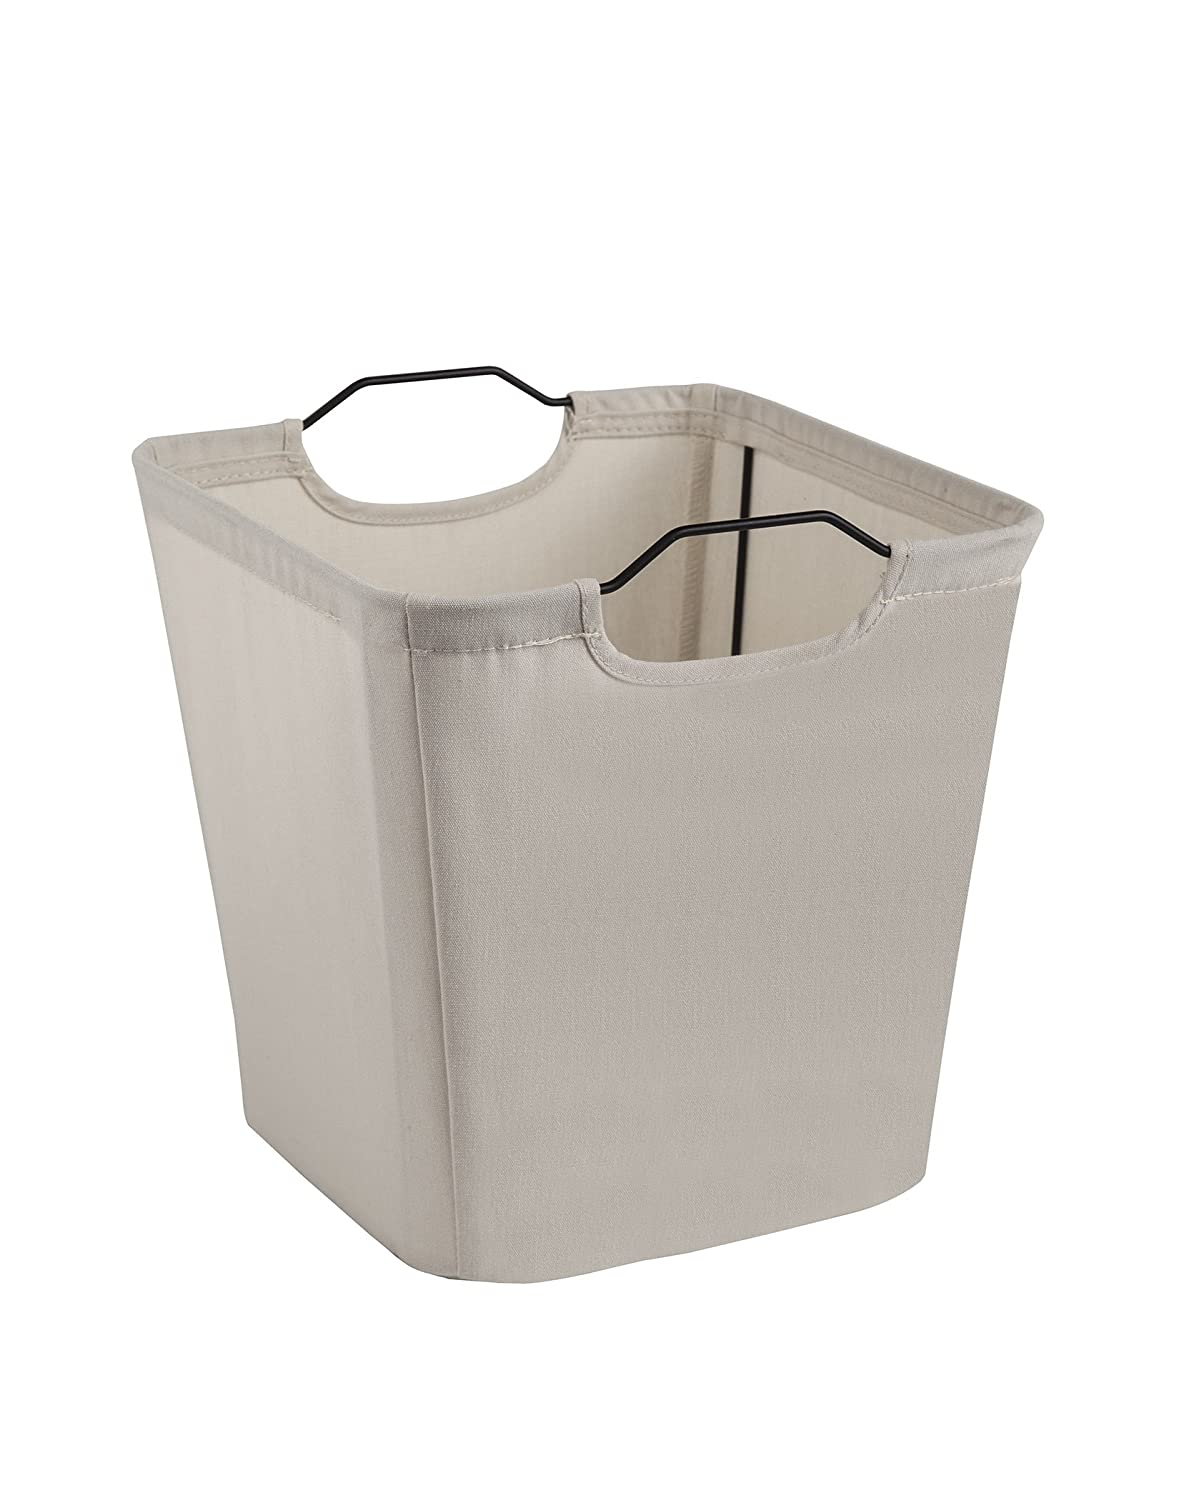 ClosetMaid 13025 Cubeicals Wire Frame Fabric Storage Bin with Handles, Aqua